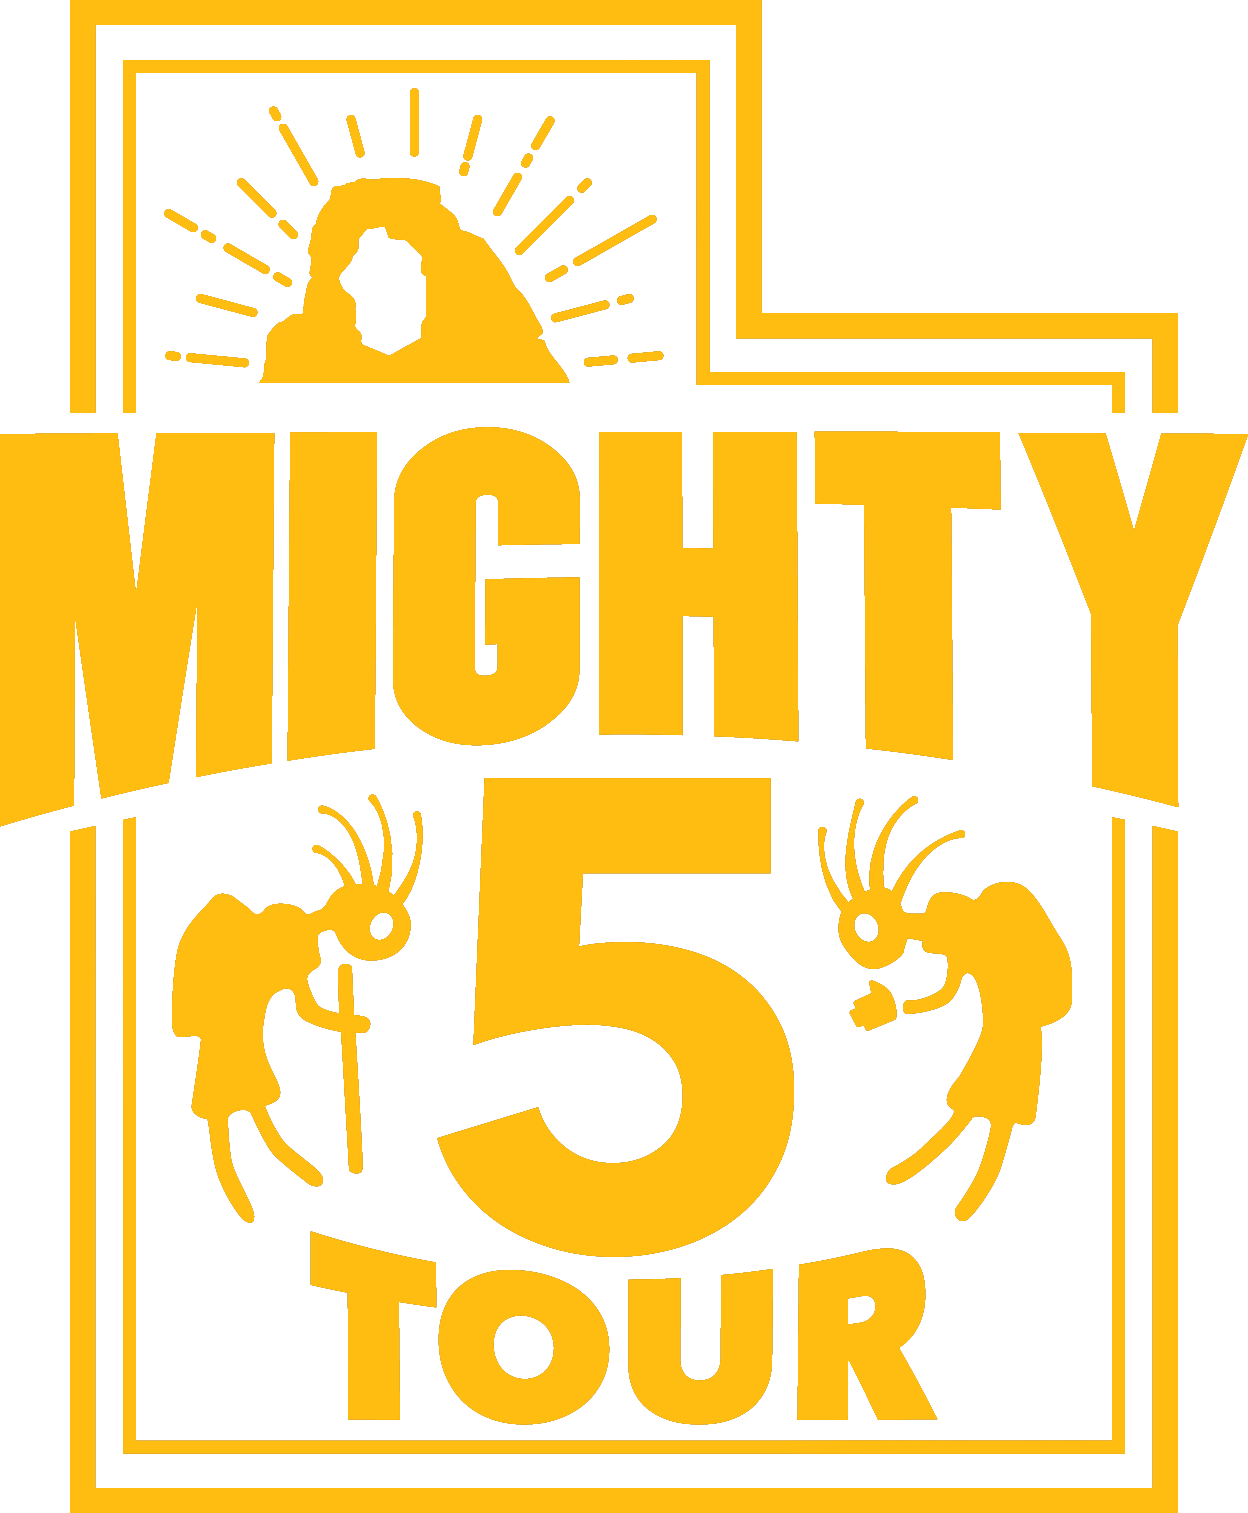 Mighty 5® Tour